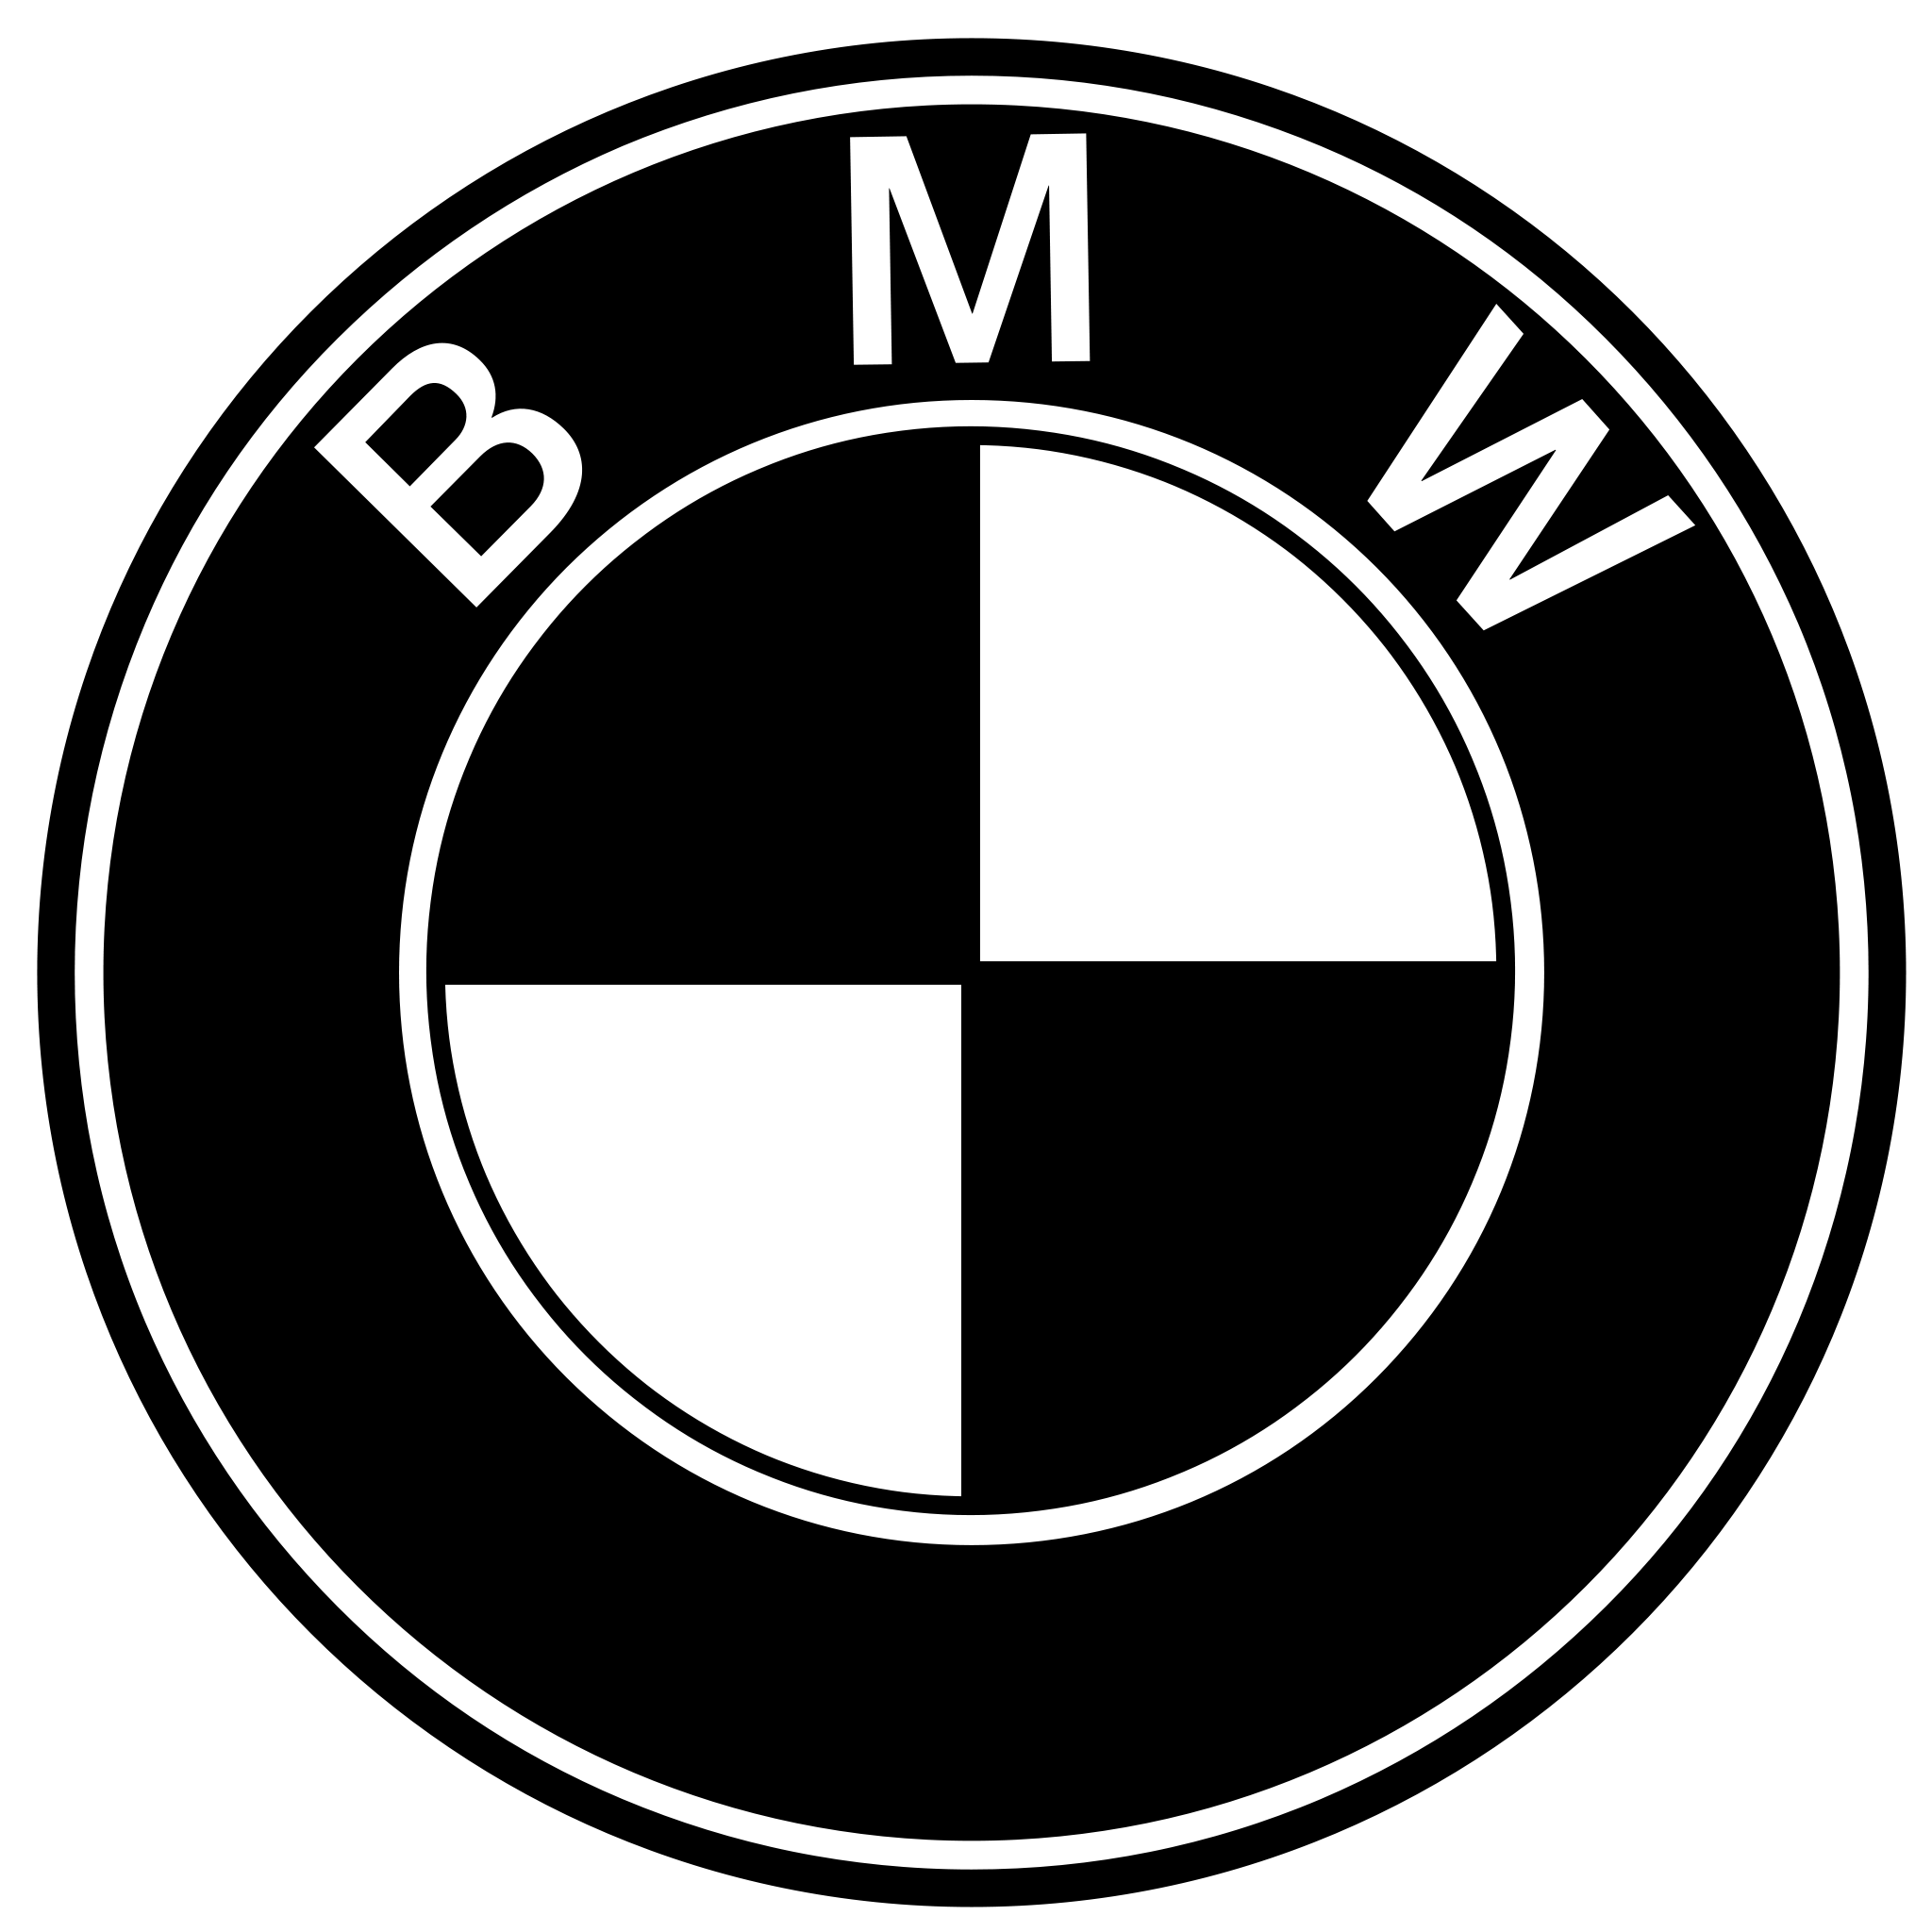 Bmw png logo. Hd meaning information carlogos